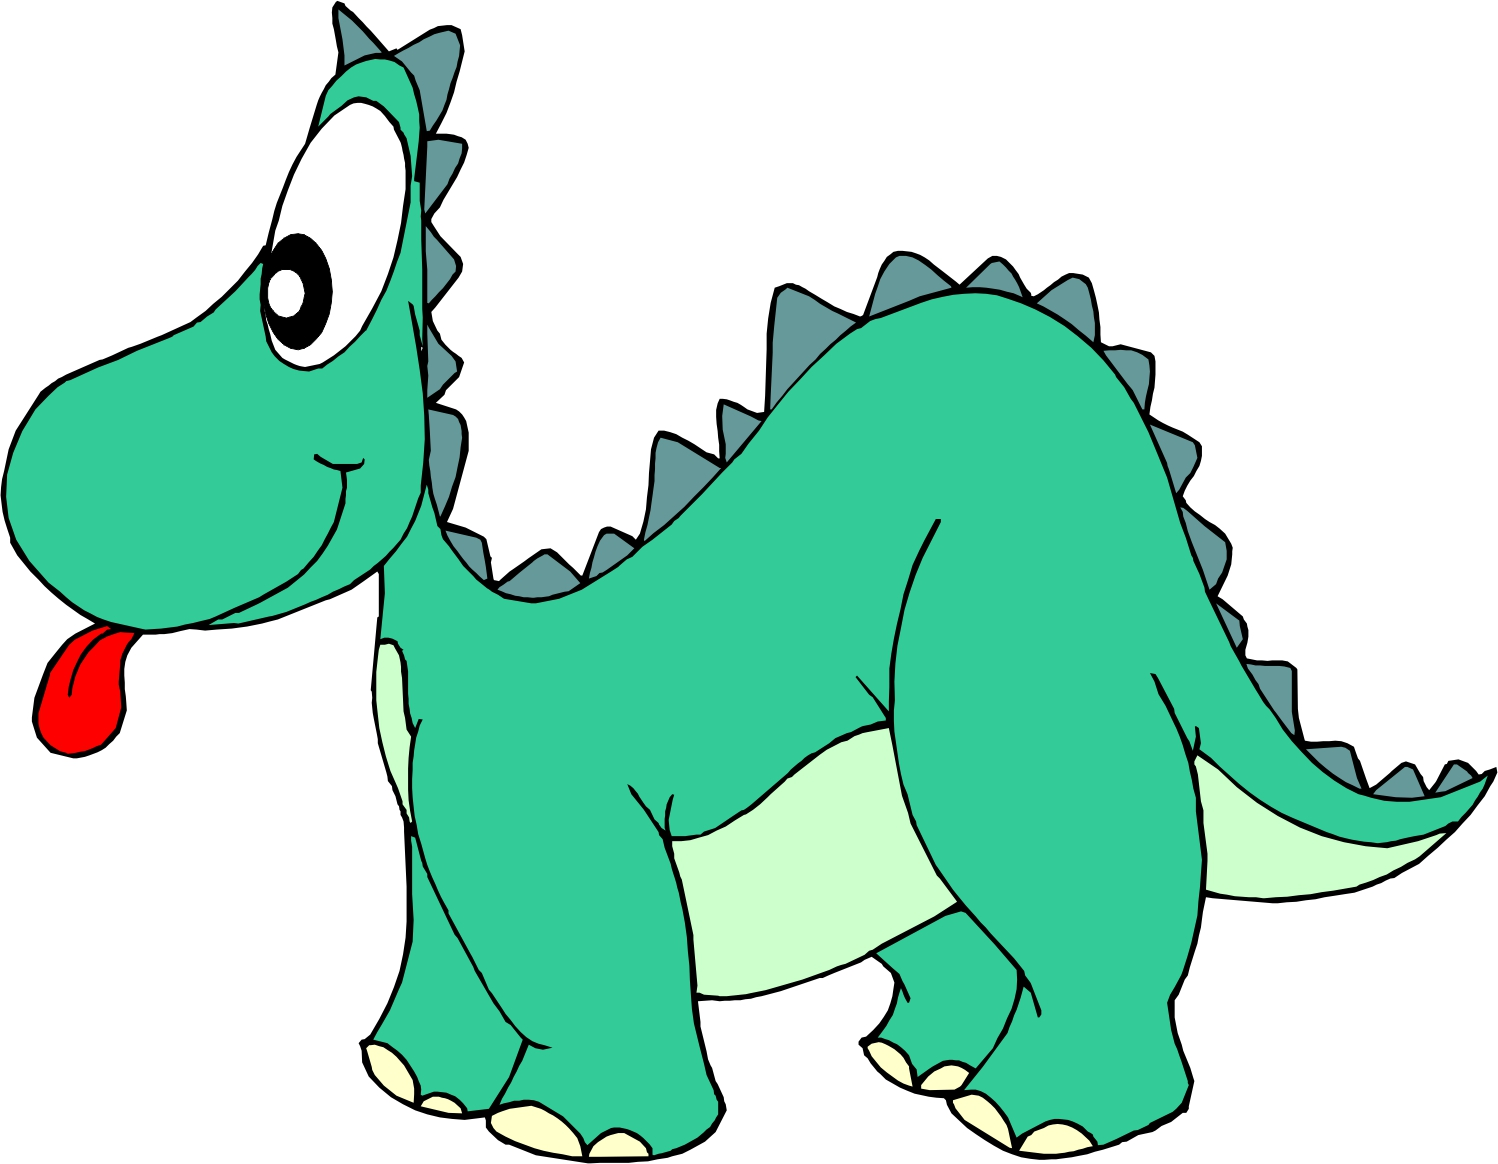 Cartoon Dinosaur Pictures - Brachiosaur